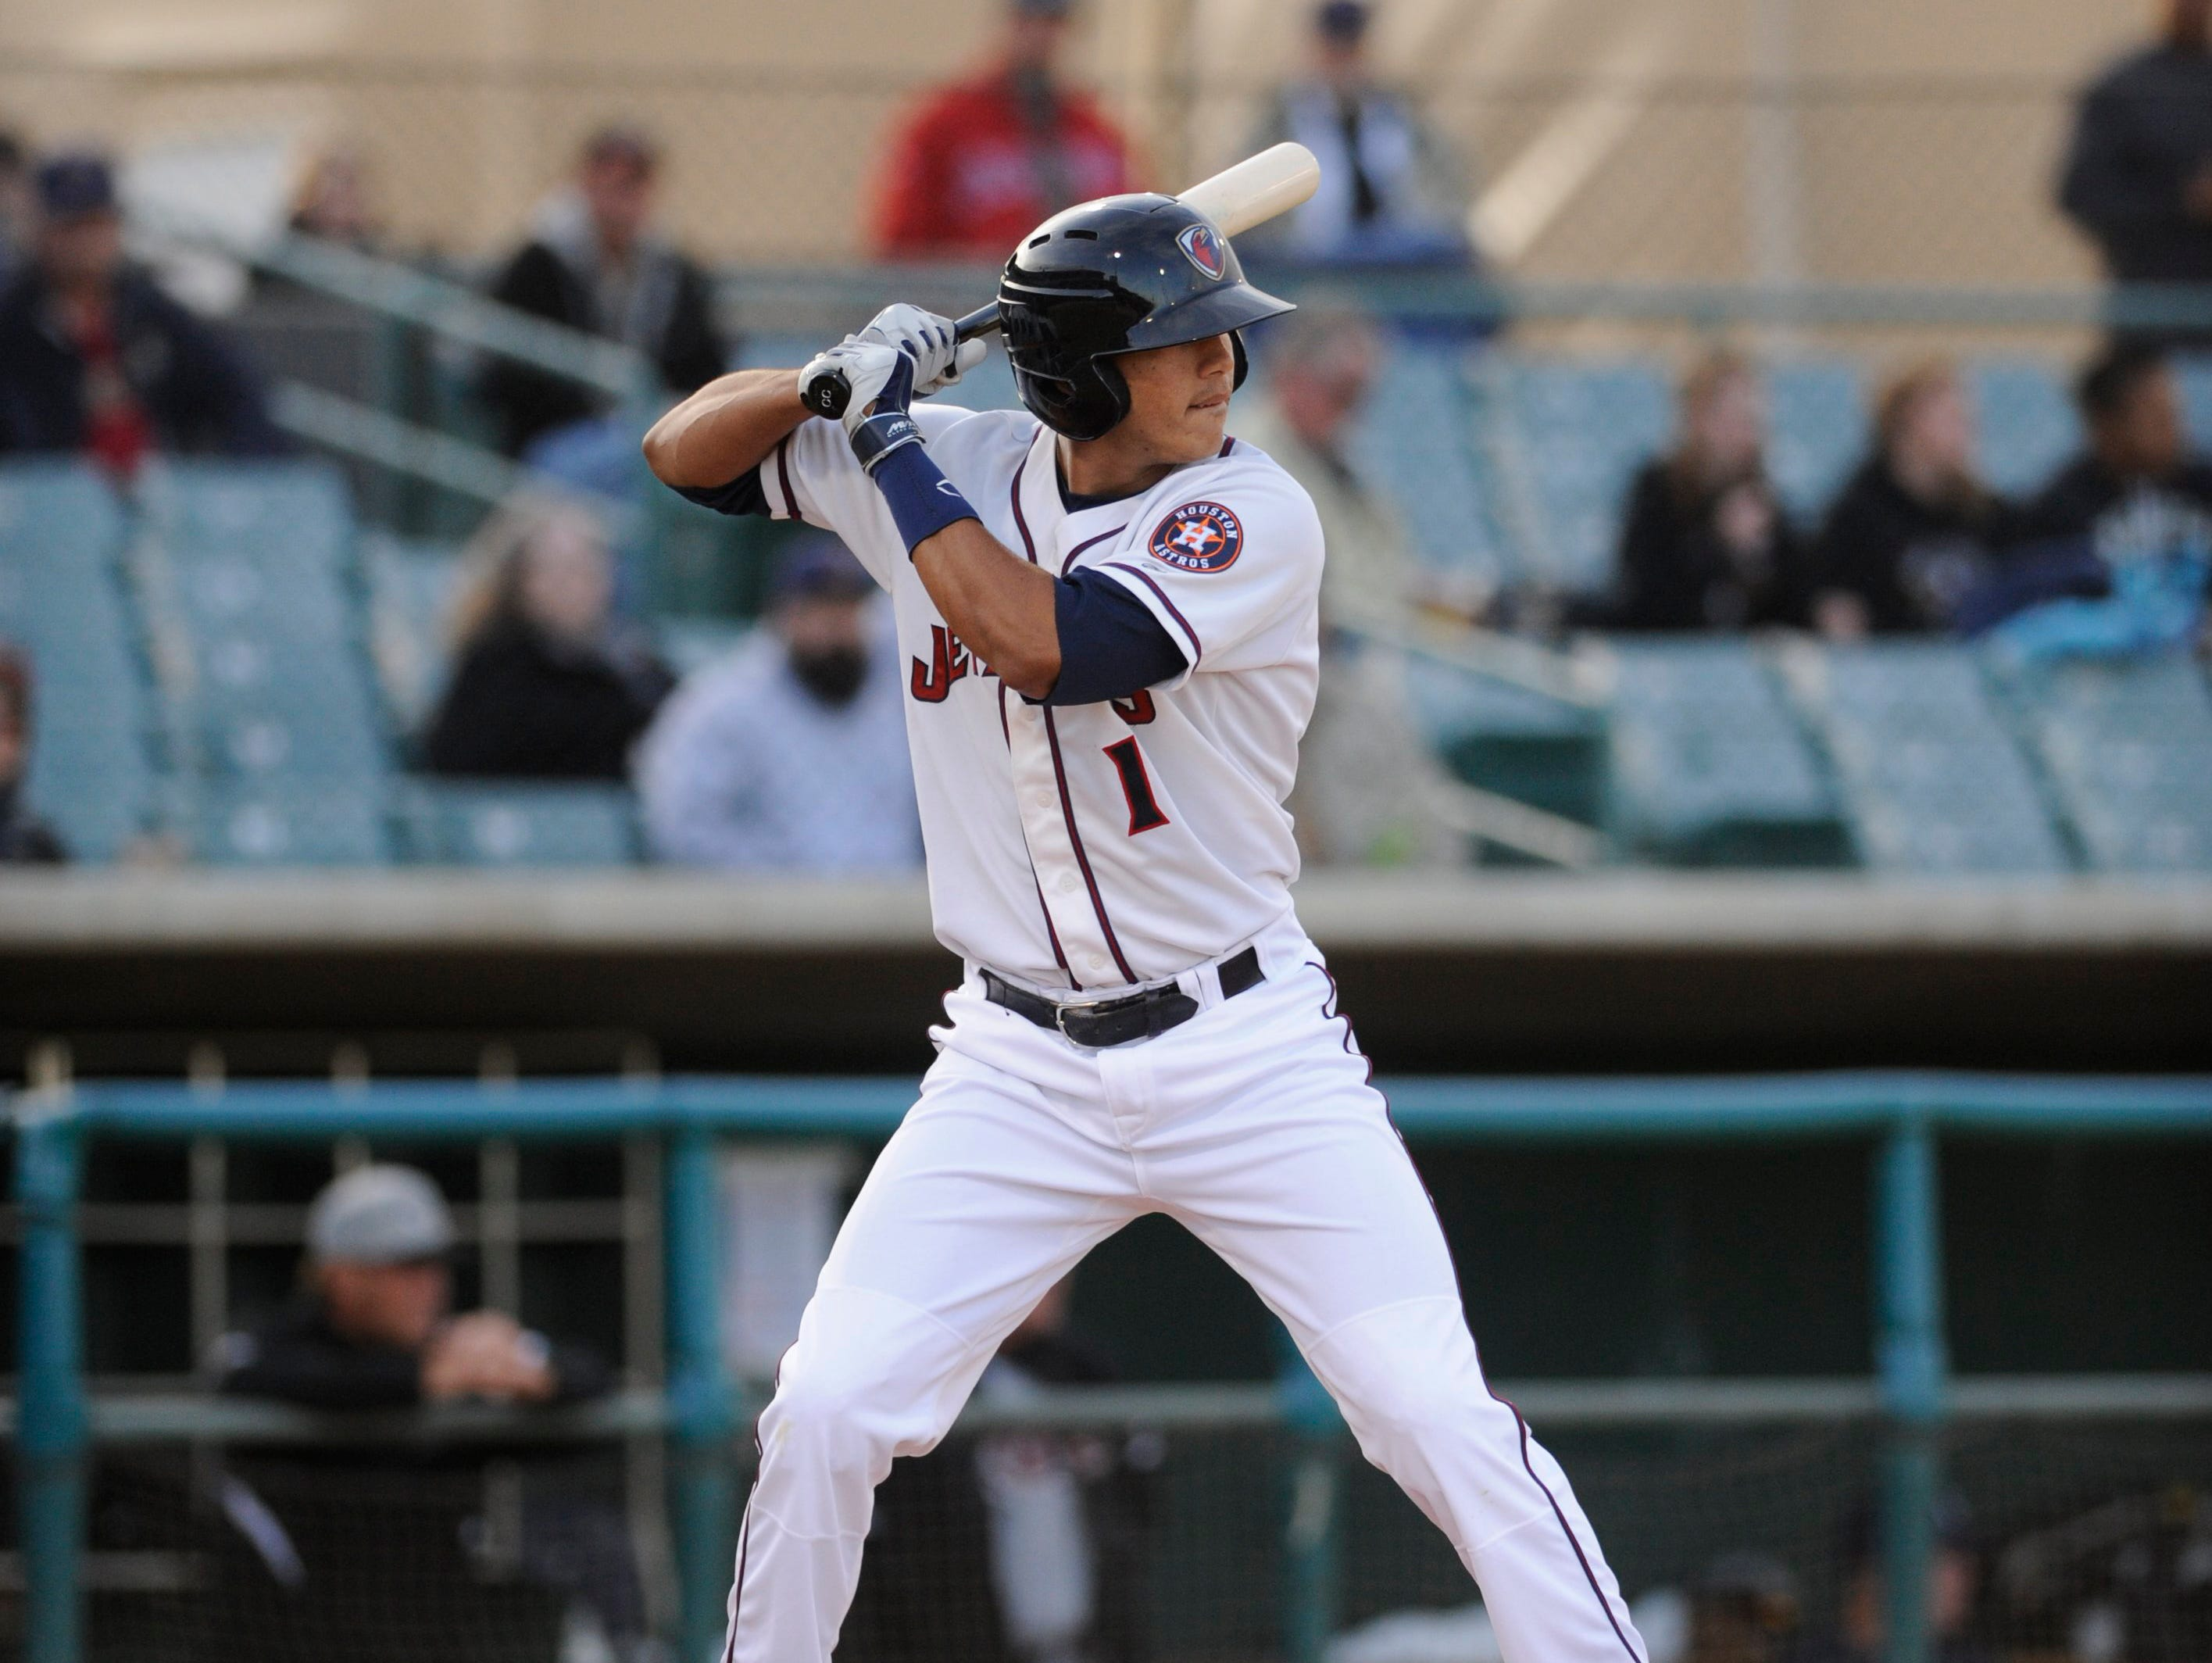 In his second full pro season in 2014, Carlos Correa put up strong numbers for High-A Lancaster.